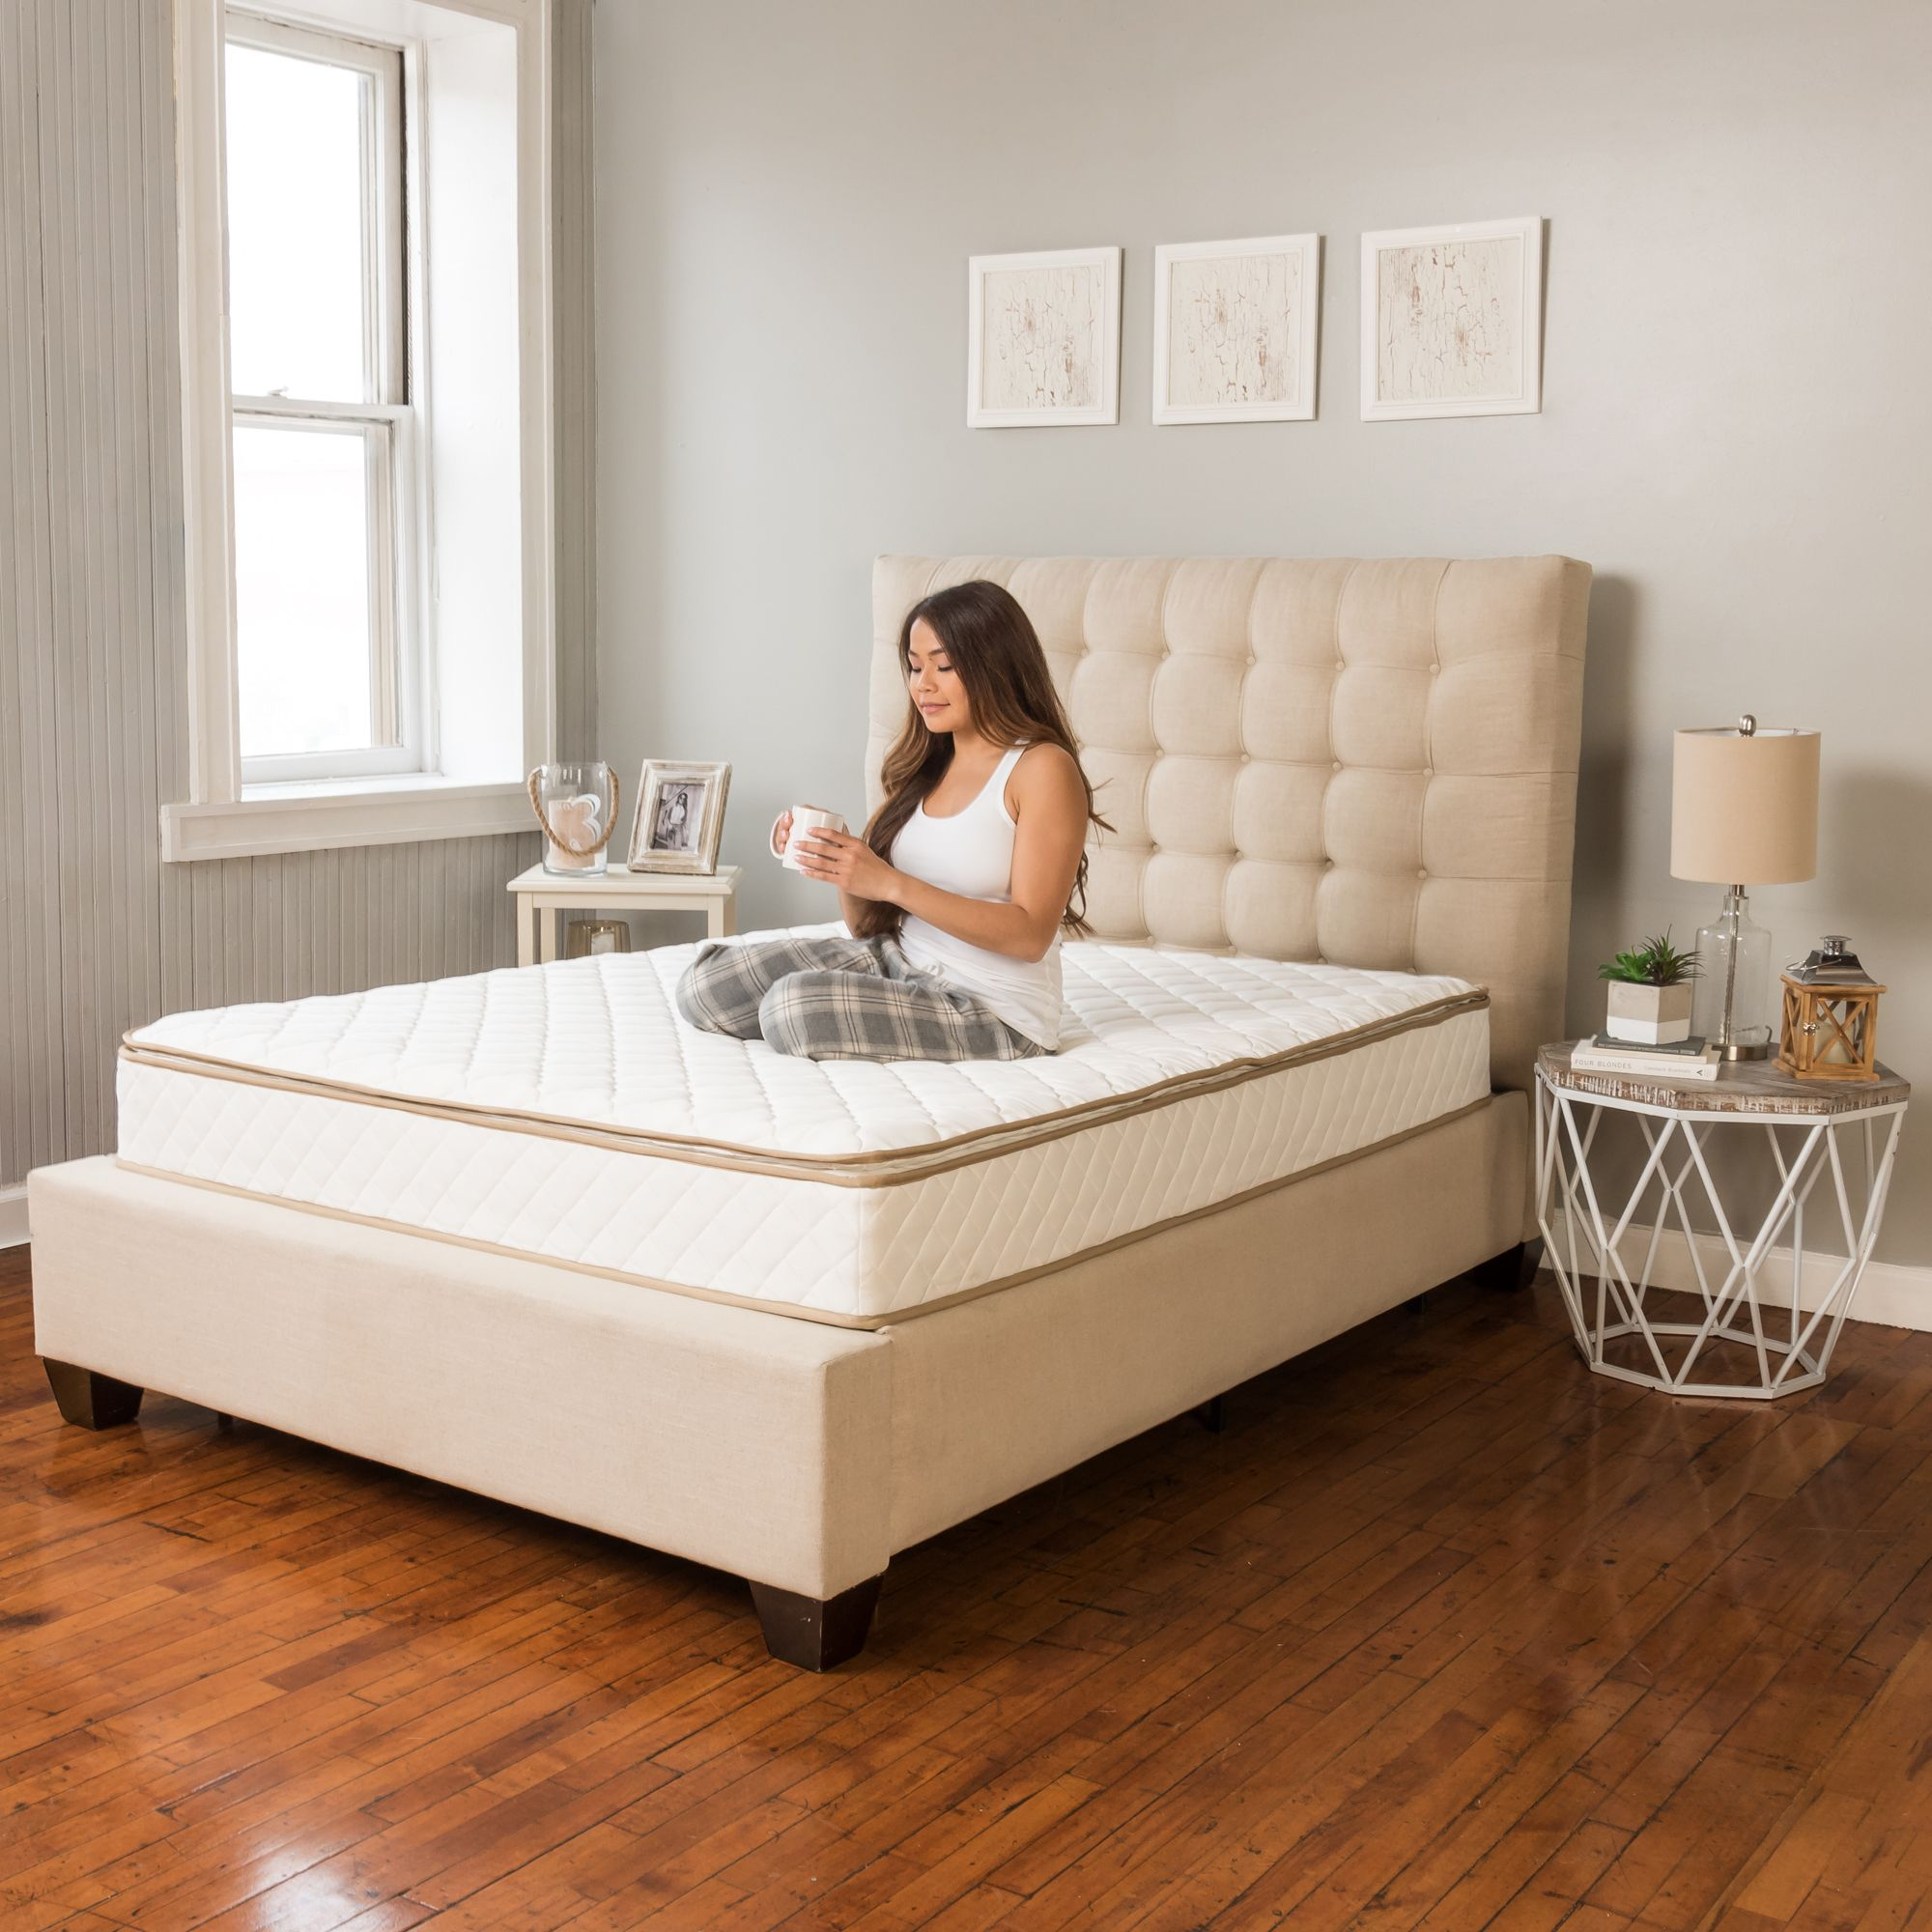 modern sleep cool gel ventilated gel memory foam 10 5 inch mattress